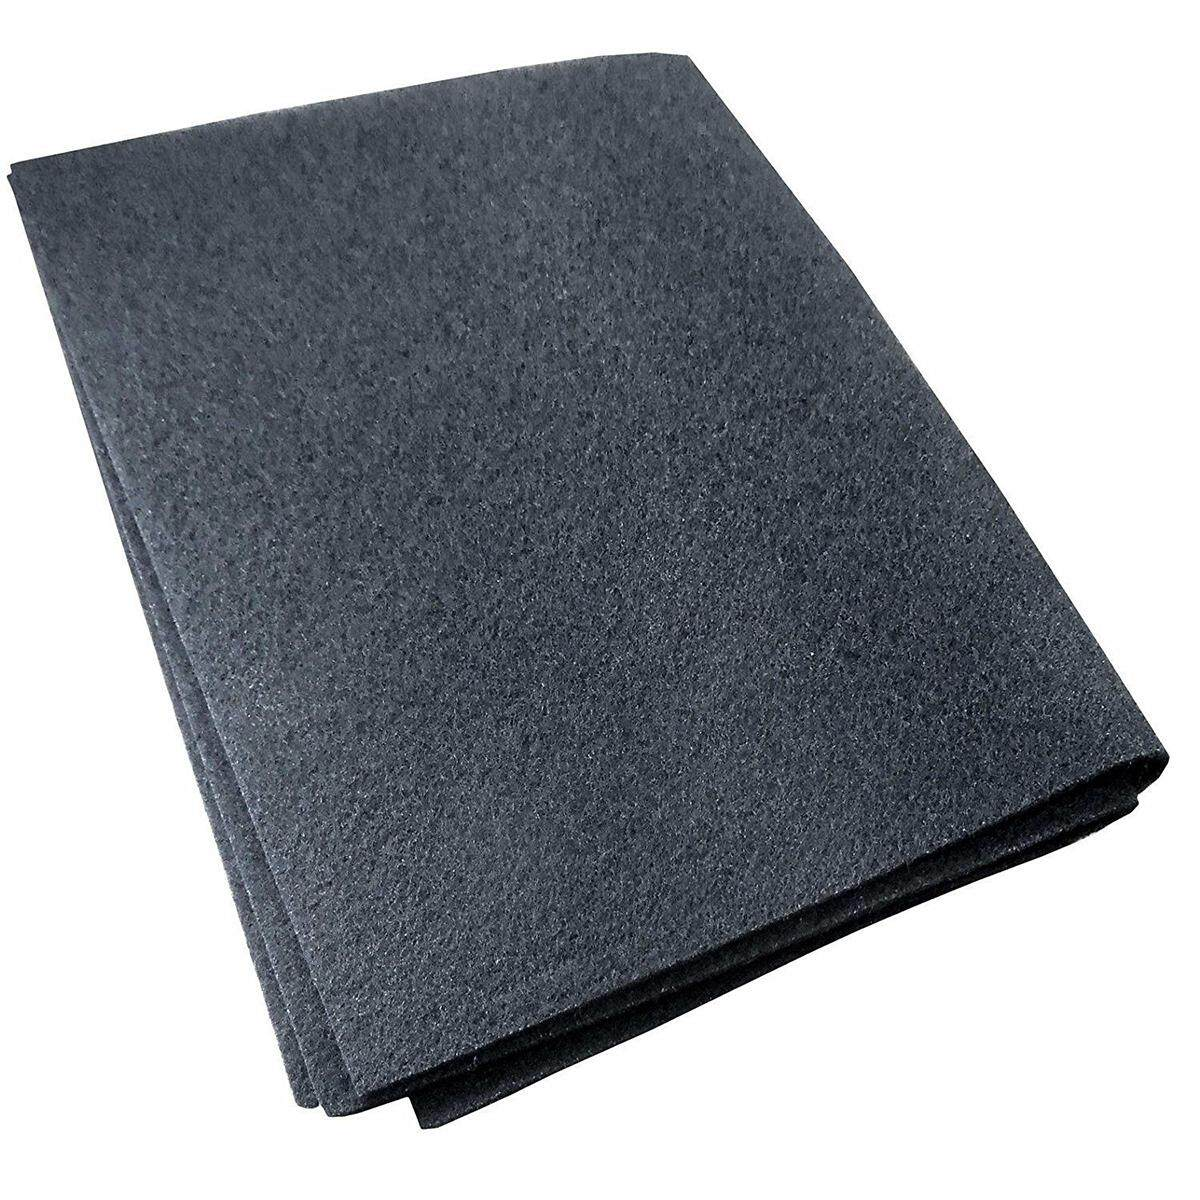 Carbon Cooker Hood Filter, Cut To Size, Charcoal Vent Filters For All Hoods By Channy.